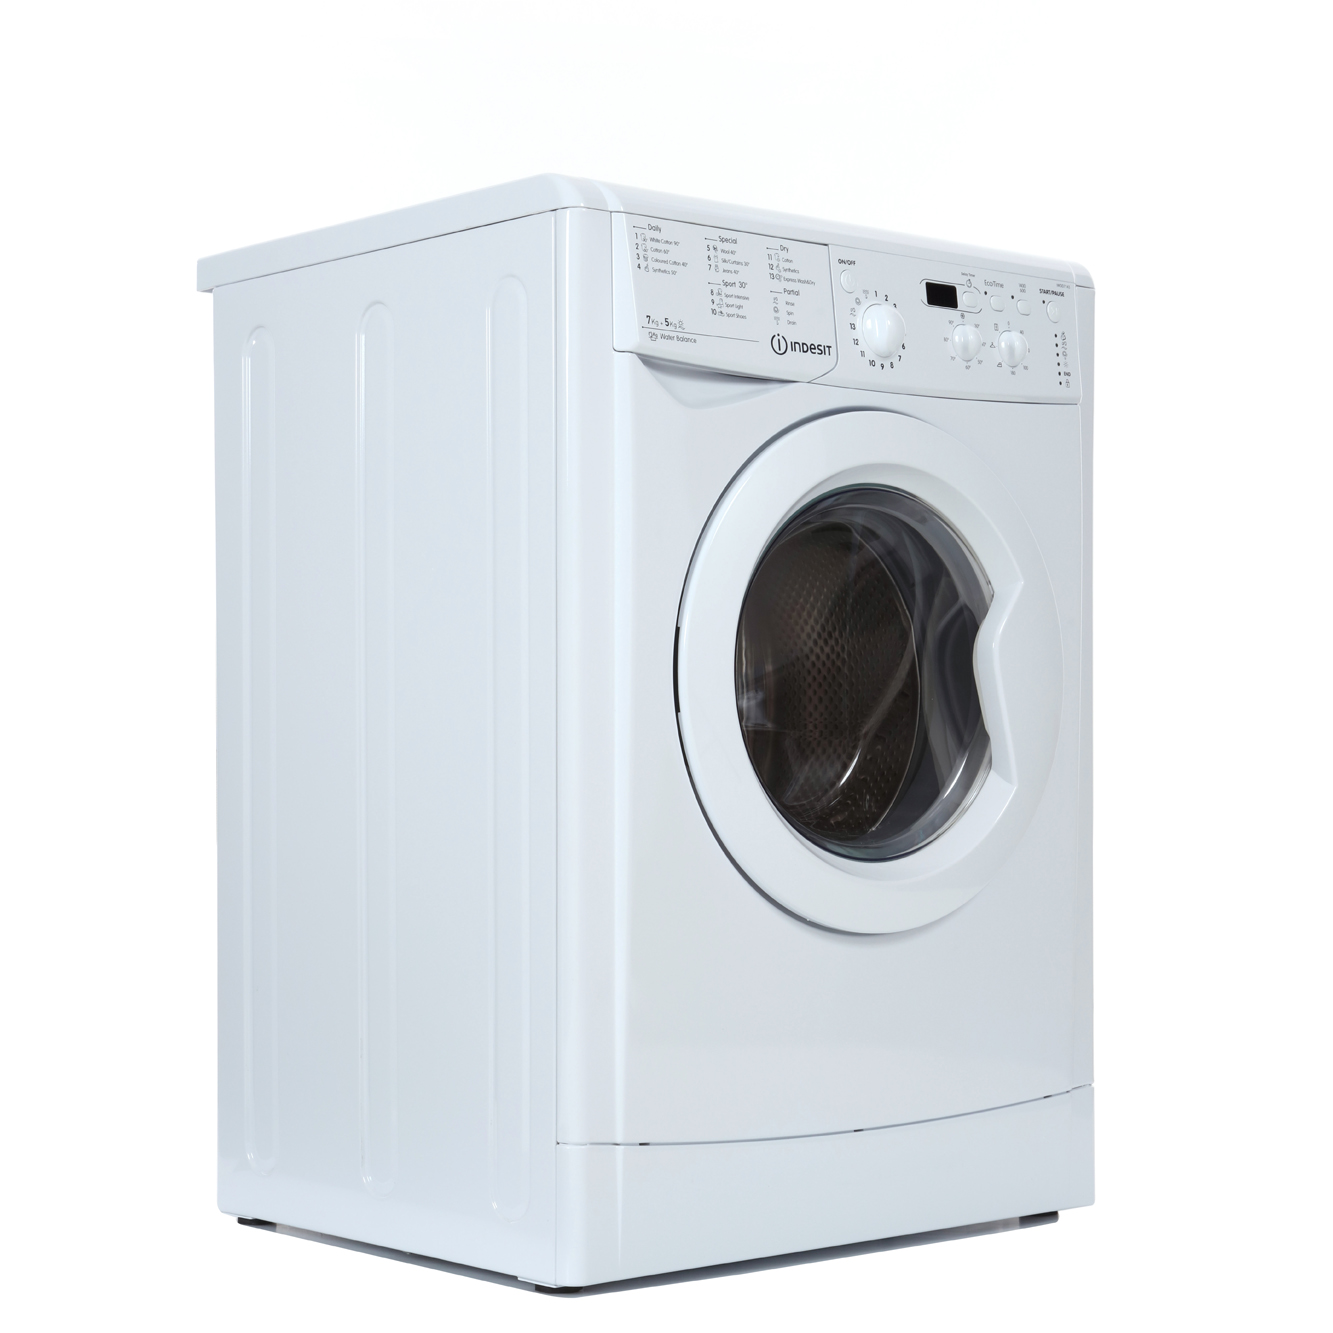 Indesit IWDD7143 Washer Dryer